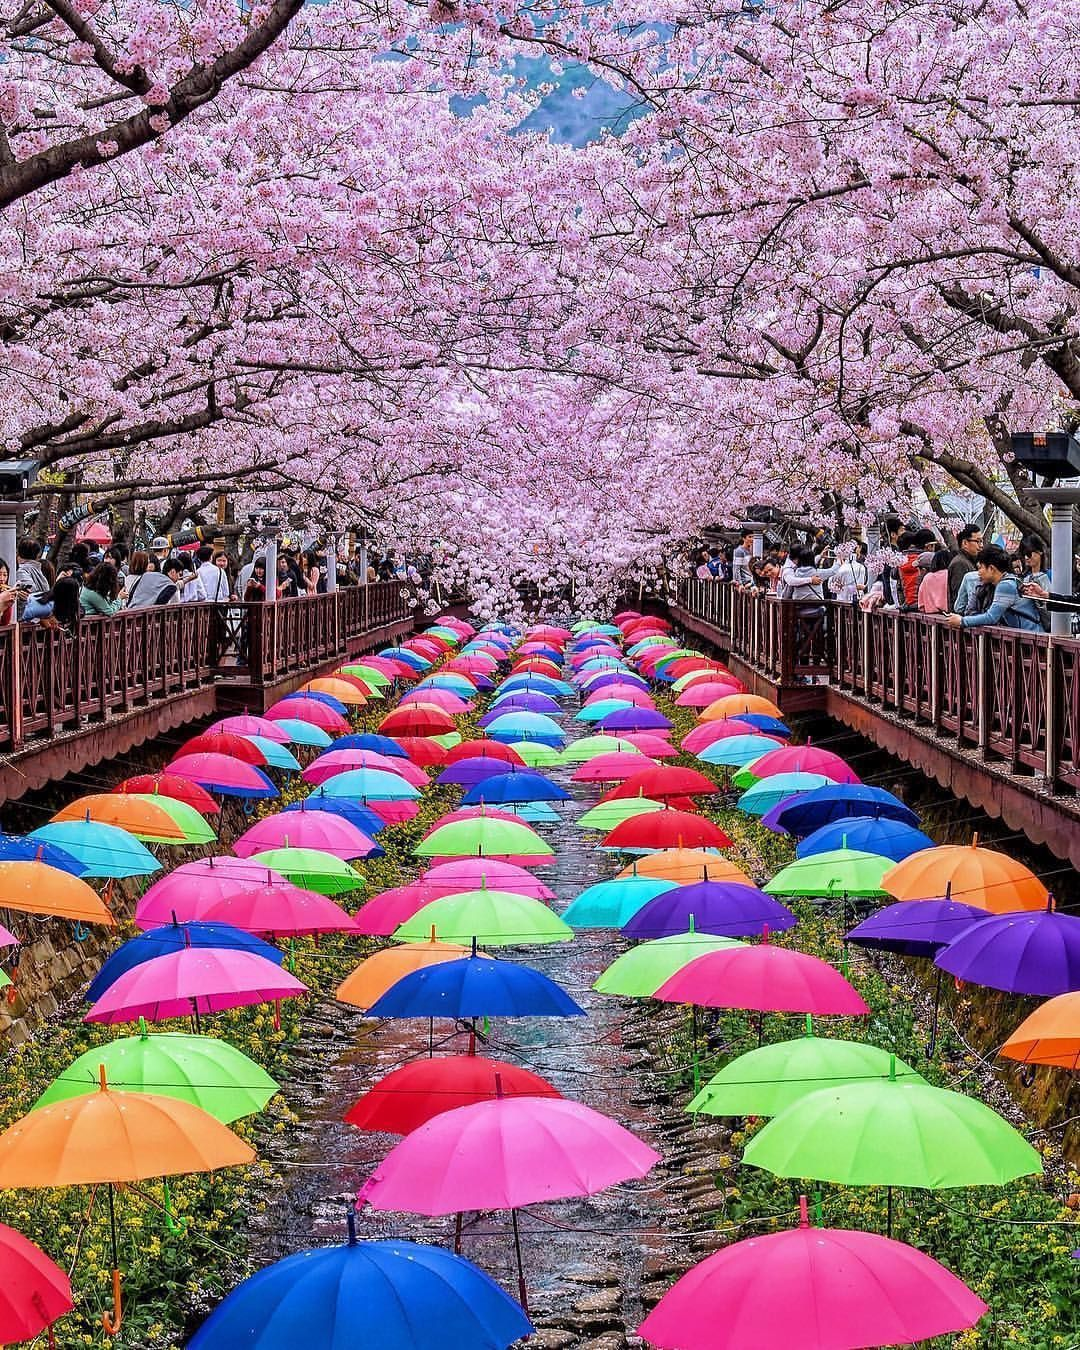 Seoul Has The Perfect Spot For A Guaranteed Instagram Banger Photo By Jackmartinphotoar Cherry Blossom Festival Cherry Blossom Japan South Korea Photography